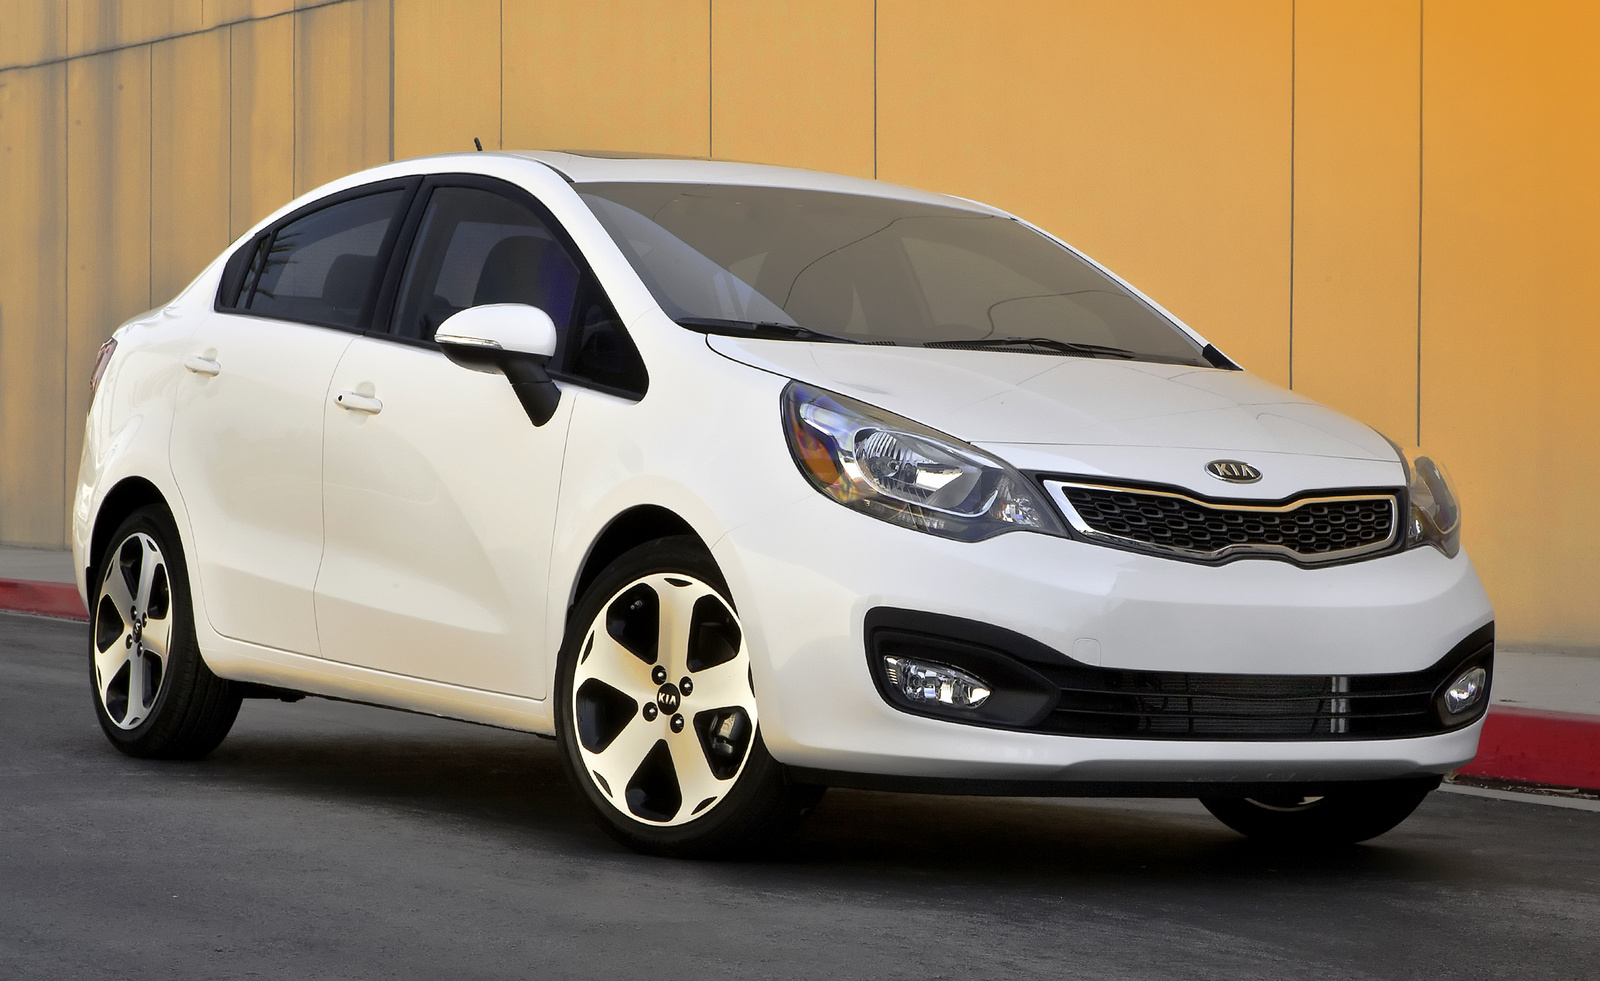 kia forte fuel filter replacement  kia  get free image